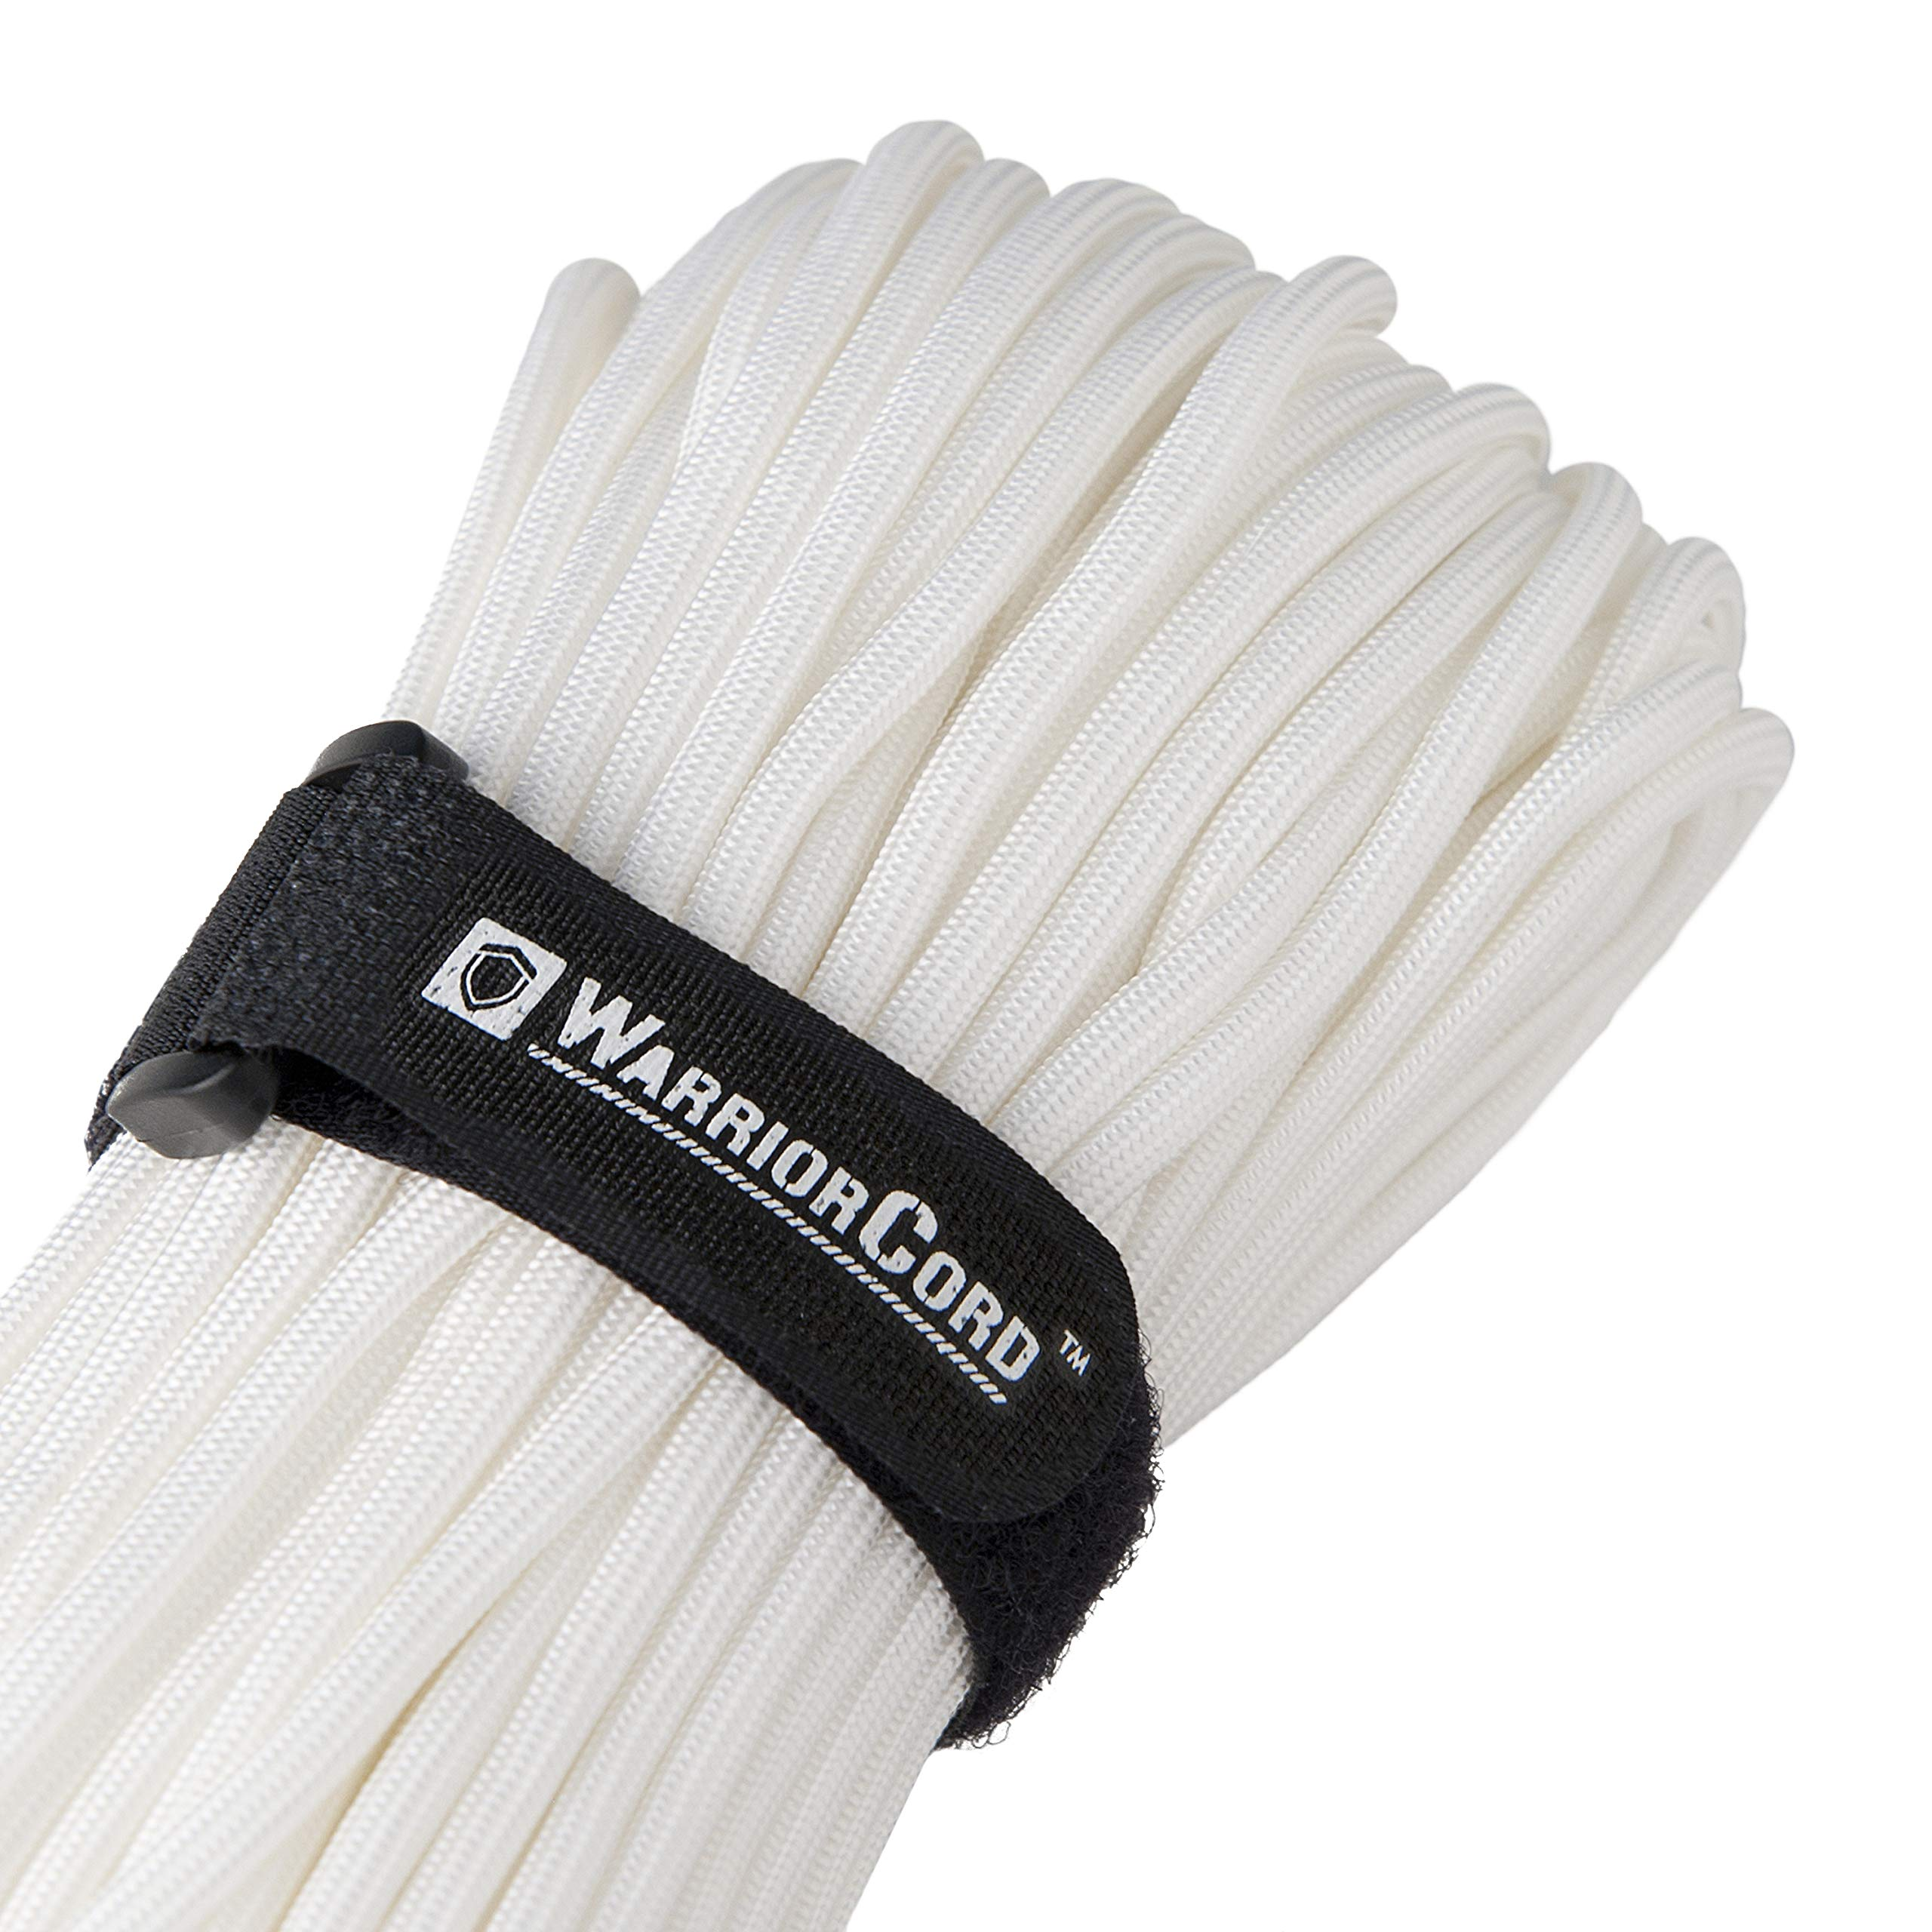 Titan WarriorCord | White | 103 Continuous FEET | Exceeds Authentic MIL-C-5040, Type III 550 Paracord Standards. 7 Strand, 5/32'' (4mm) Diameter, Military Parachute Cord. by Titan Paracord (Image #1)